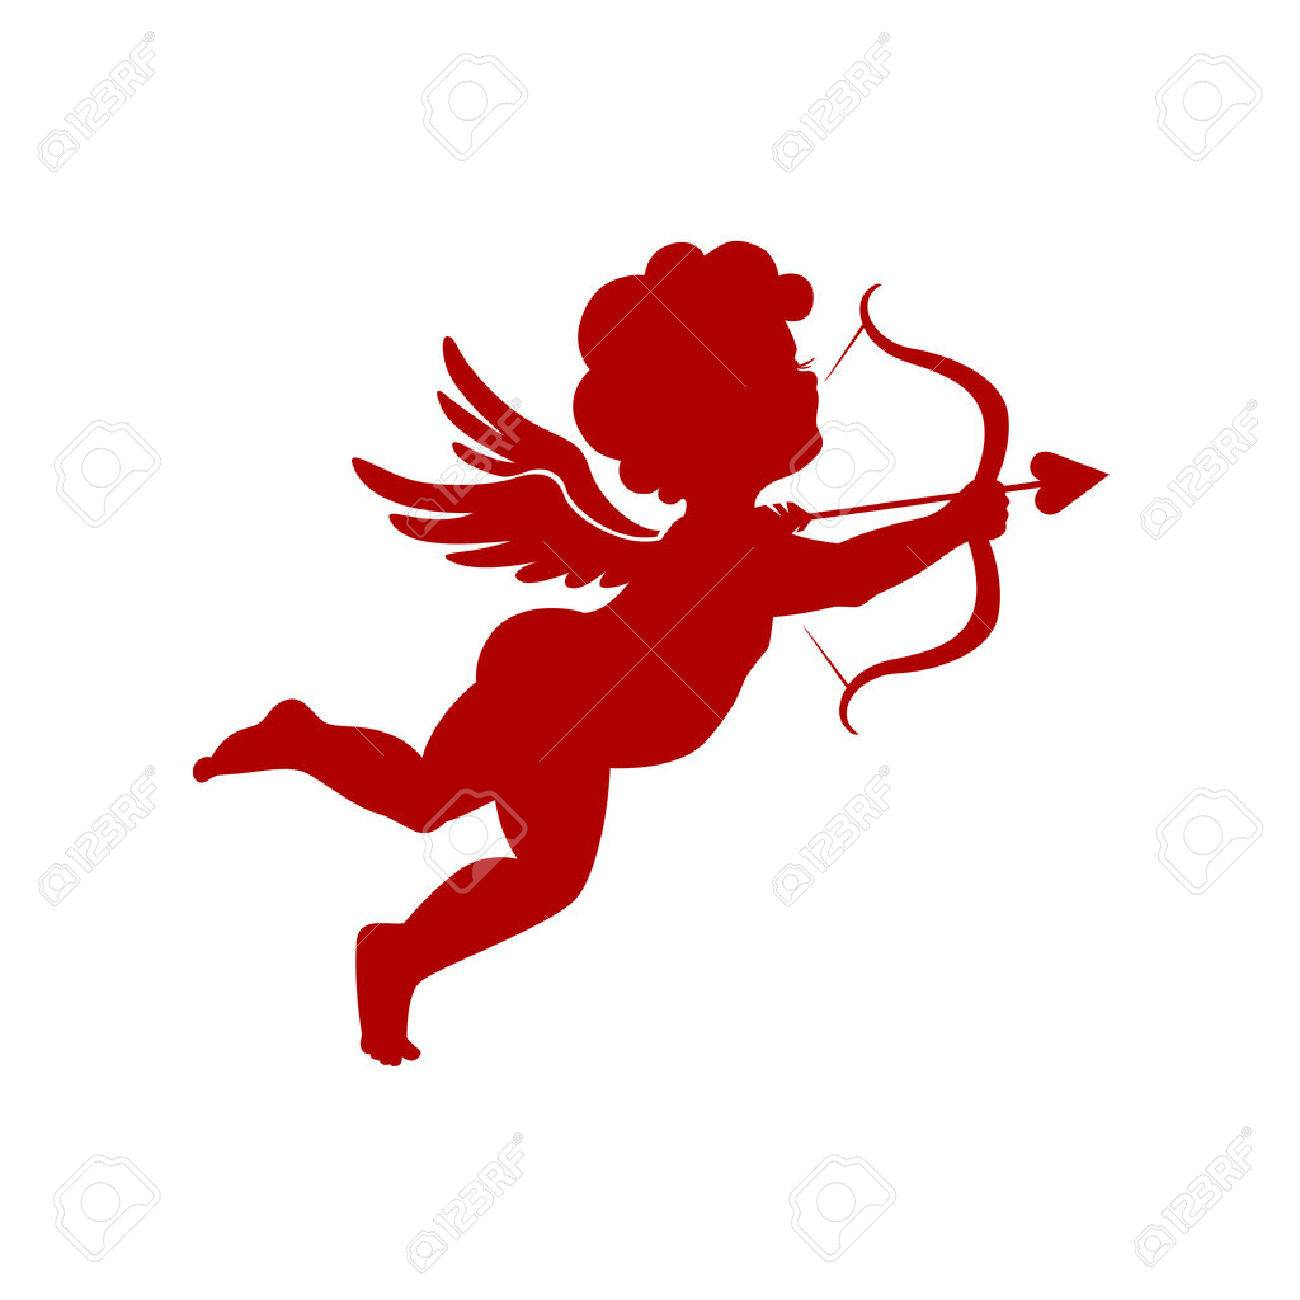 Cupid shooting silhouette on white background vector illustration - 53401603